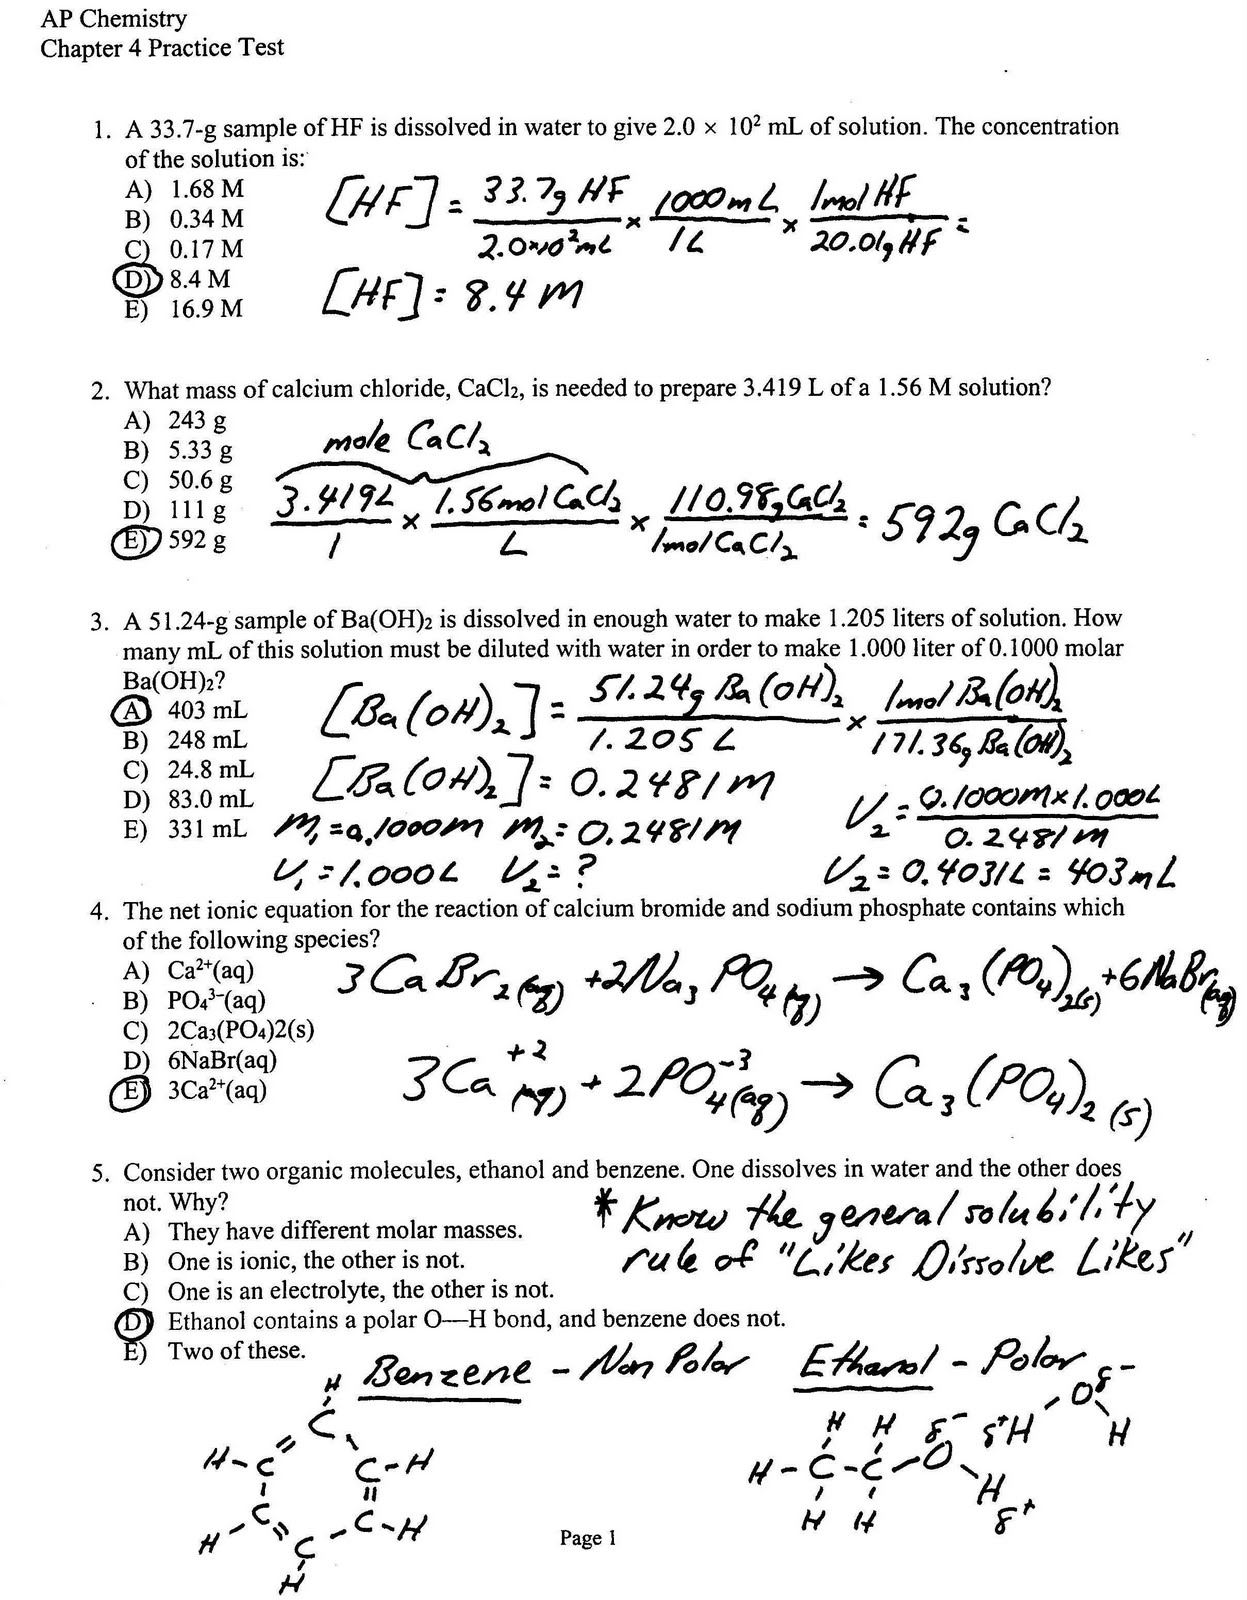 high school chemistry multiple choice questions High school chemistry test mark your answers to multiple-choice questions 12 through 22 in the spaces provided in your student answer booklet.